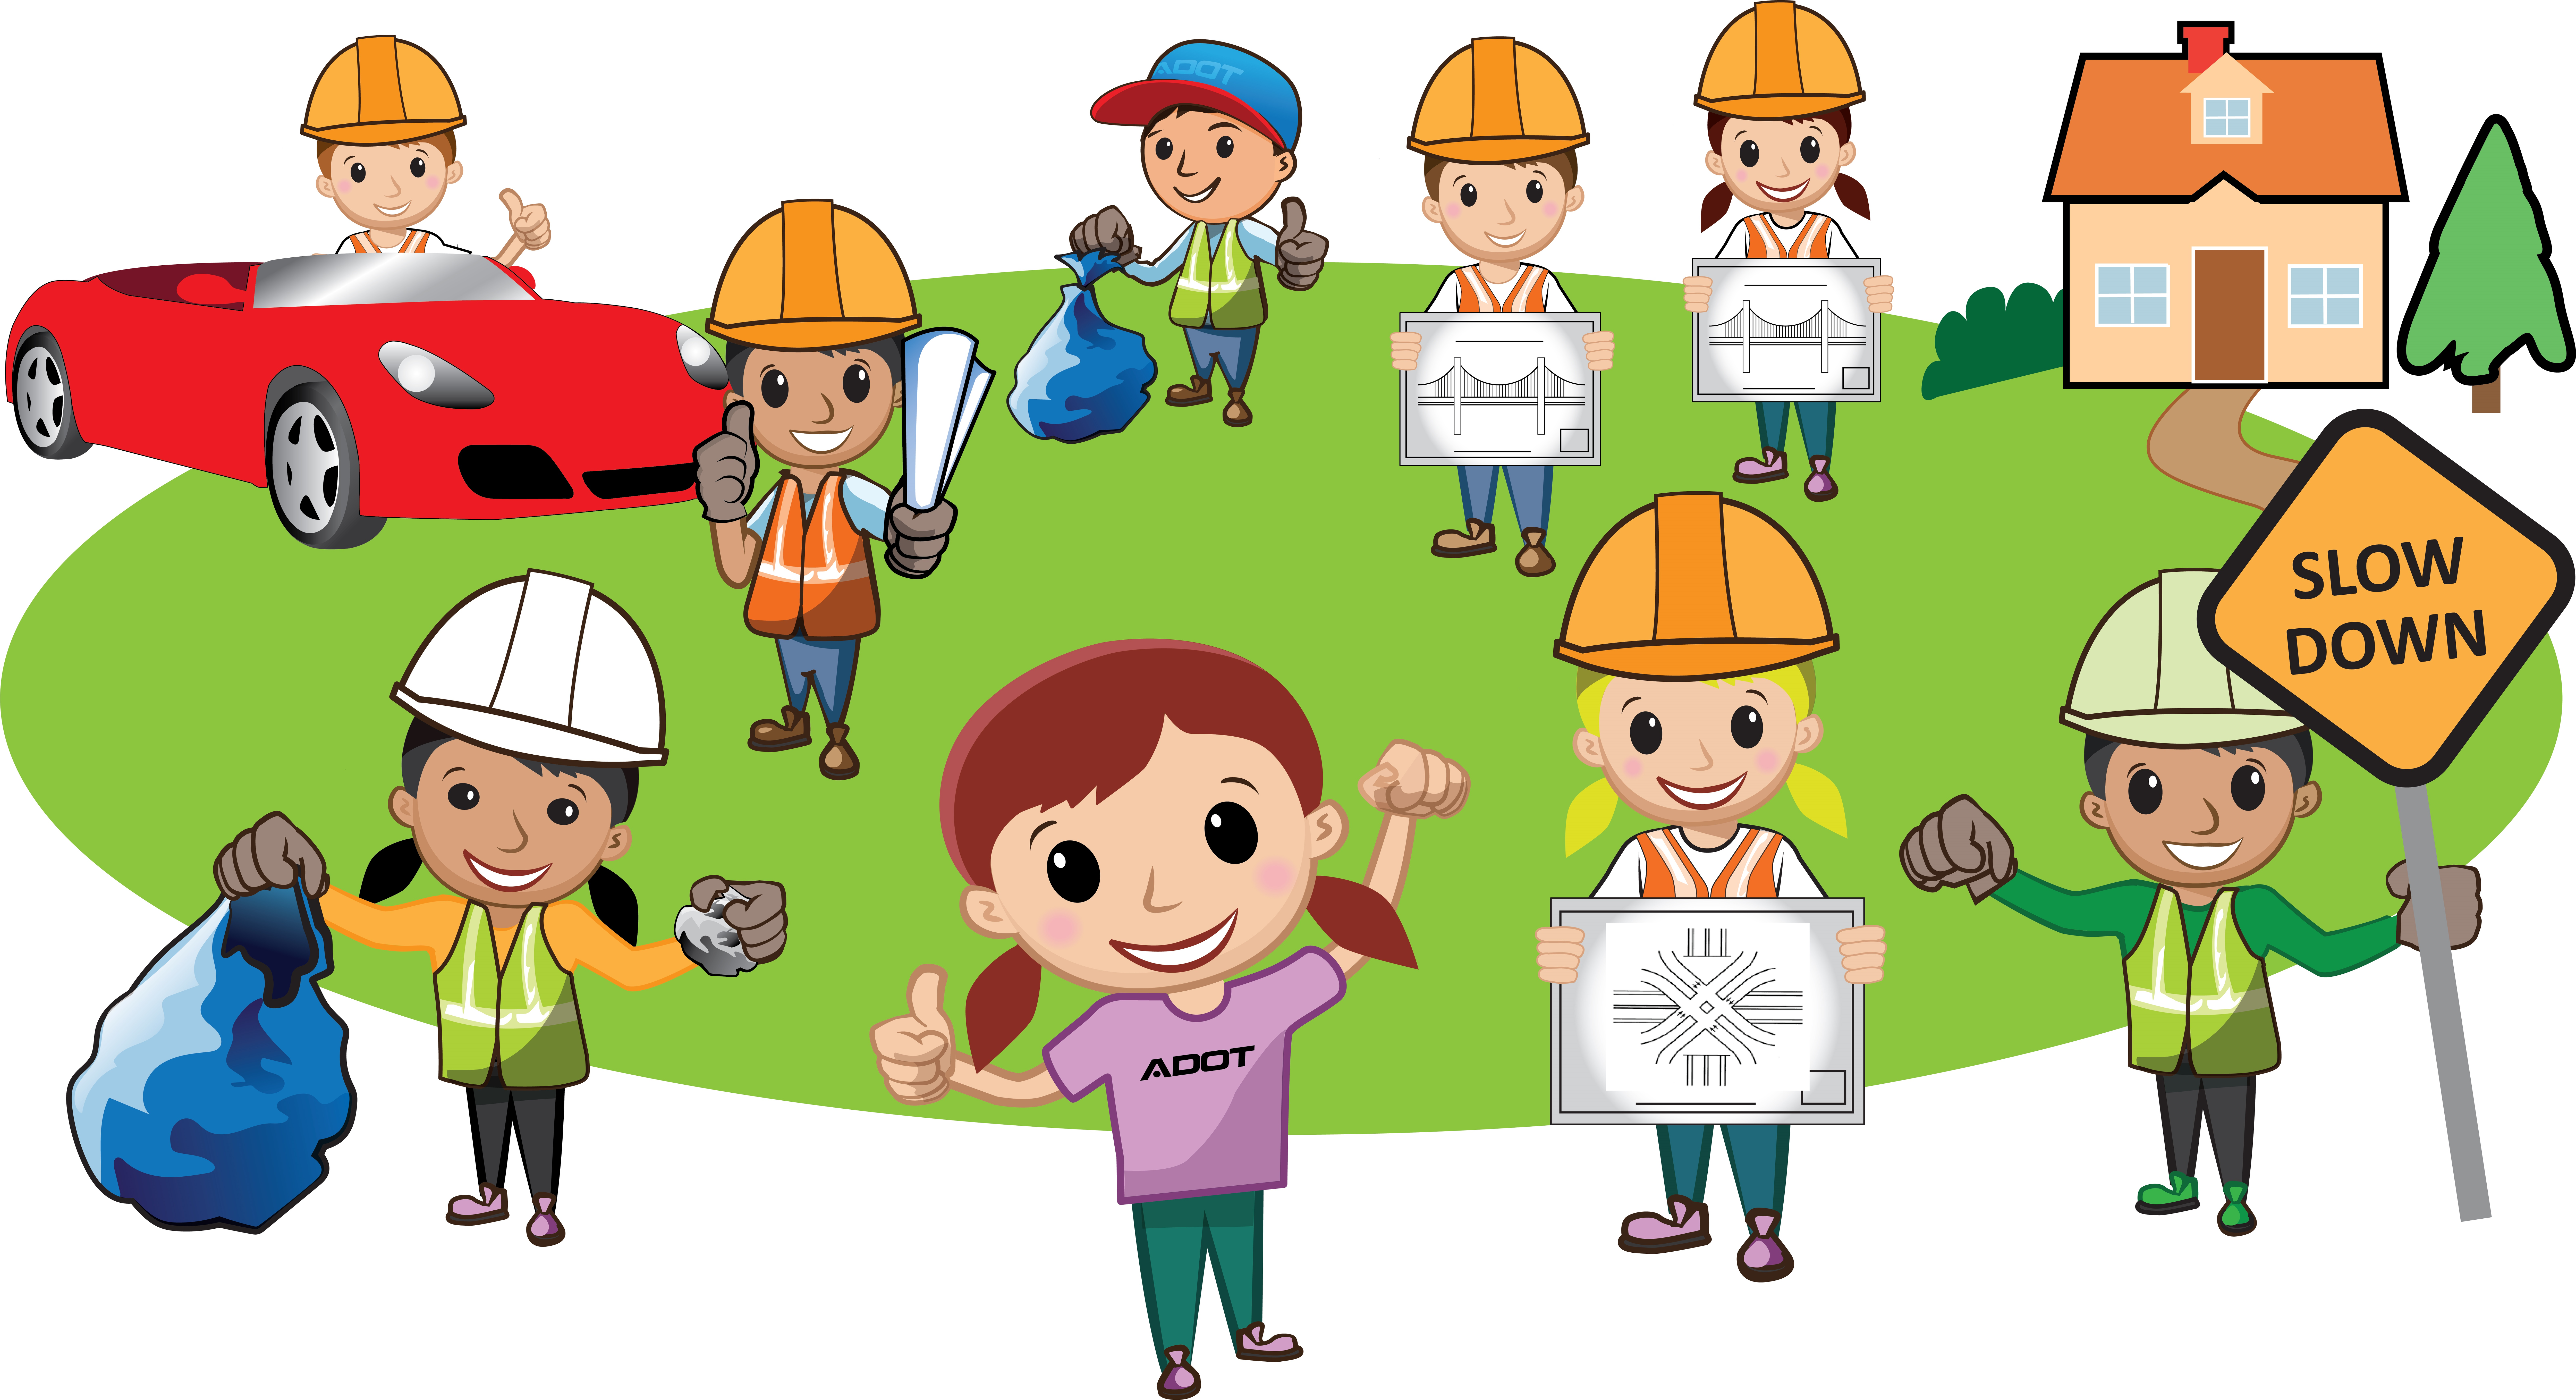 ADOT Kids All Characters for print